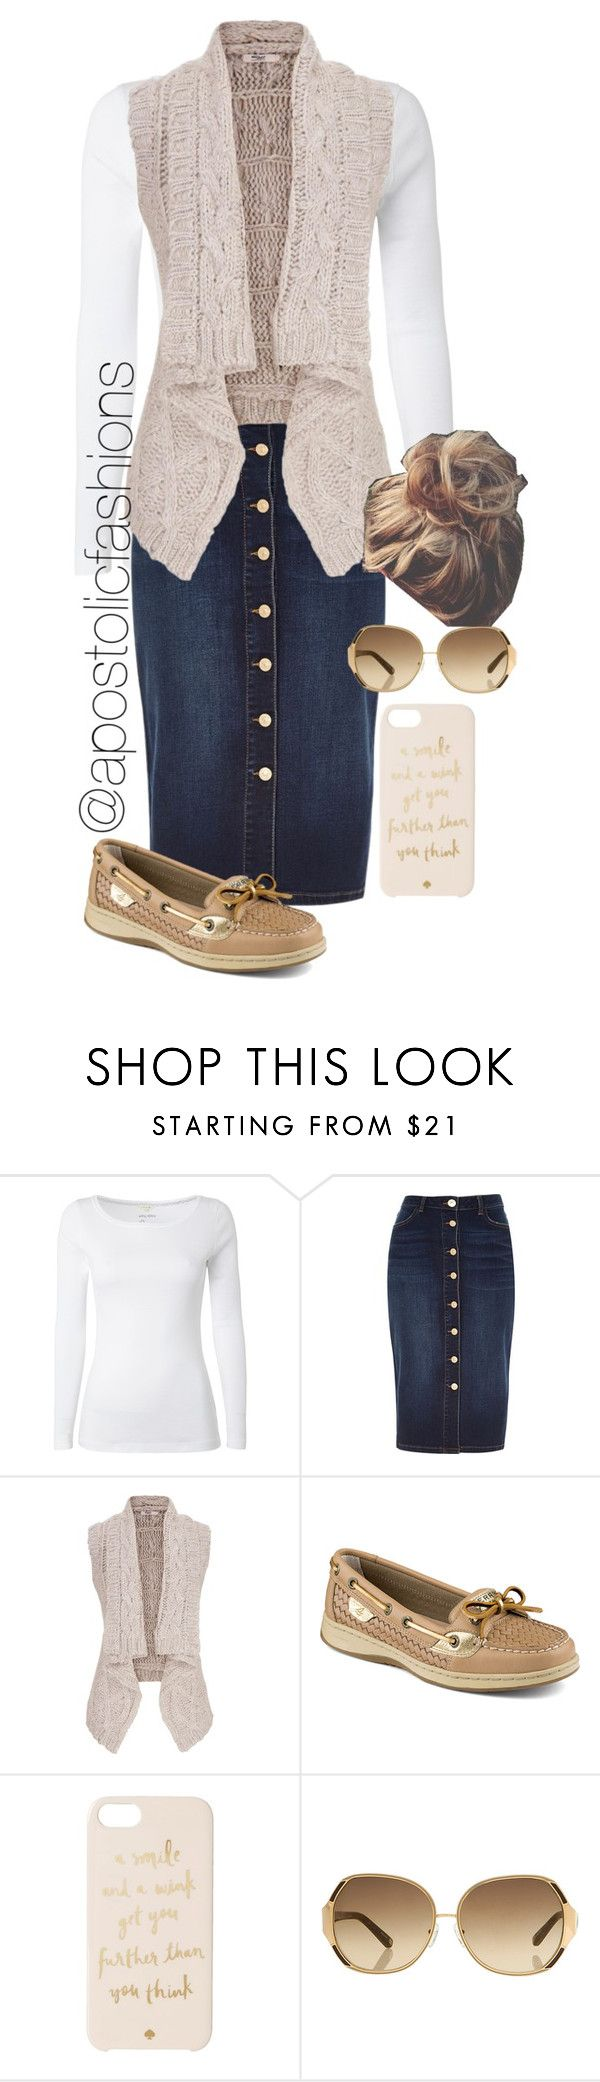 """""""Apostolic Fashions #854"""" by apostolicfashions on Polyvore featuring White Stuff, River Island, maurices, Sperry Top-Sider, Kate Spade and Oscar de la Renta"""